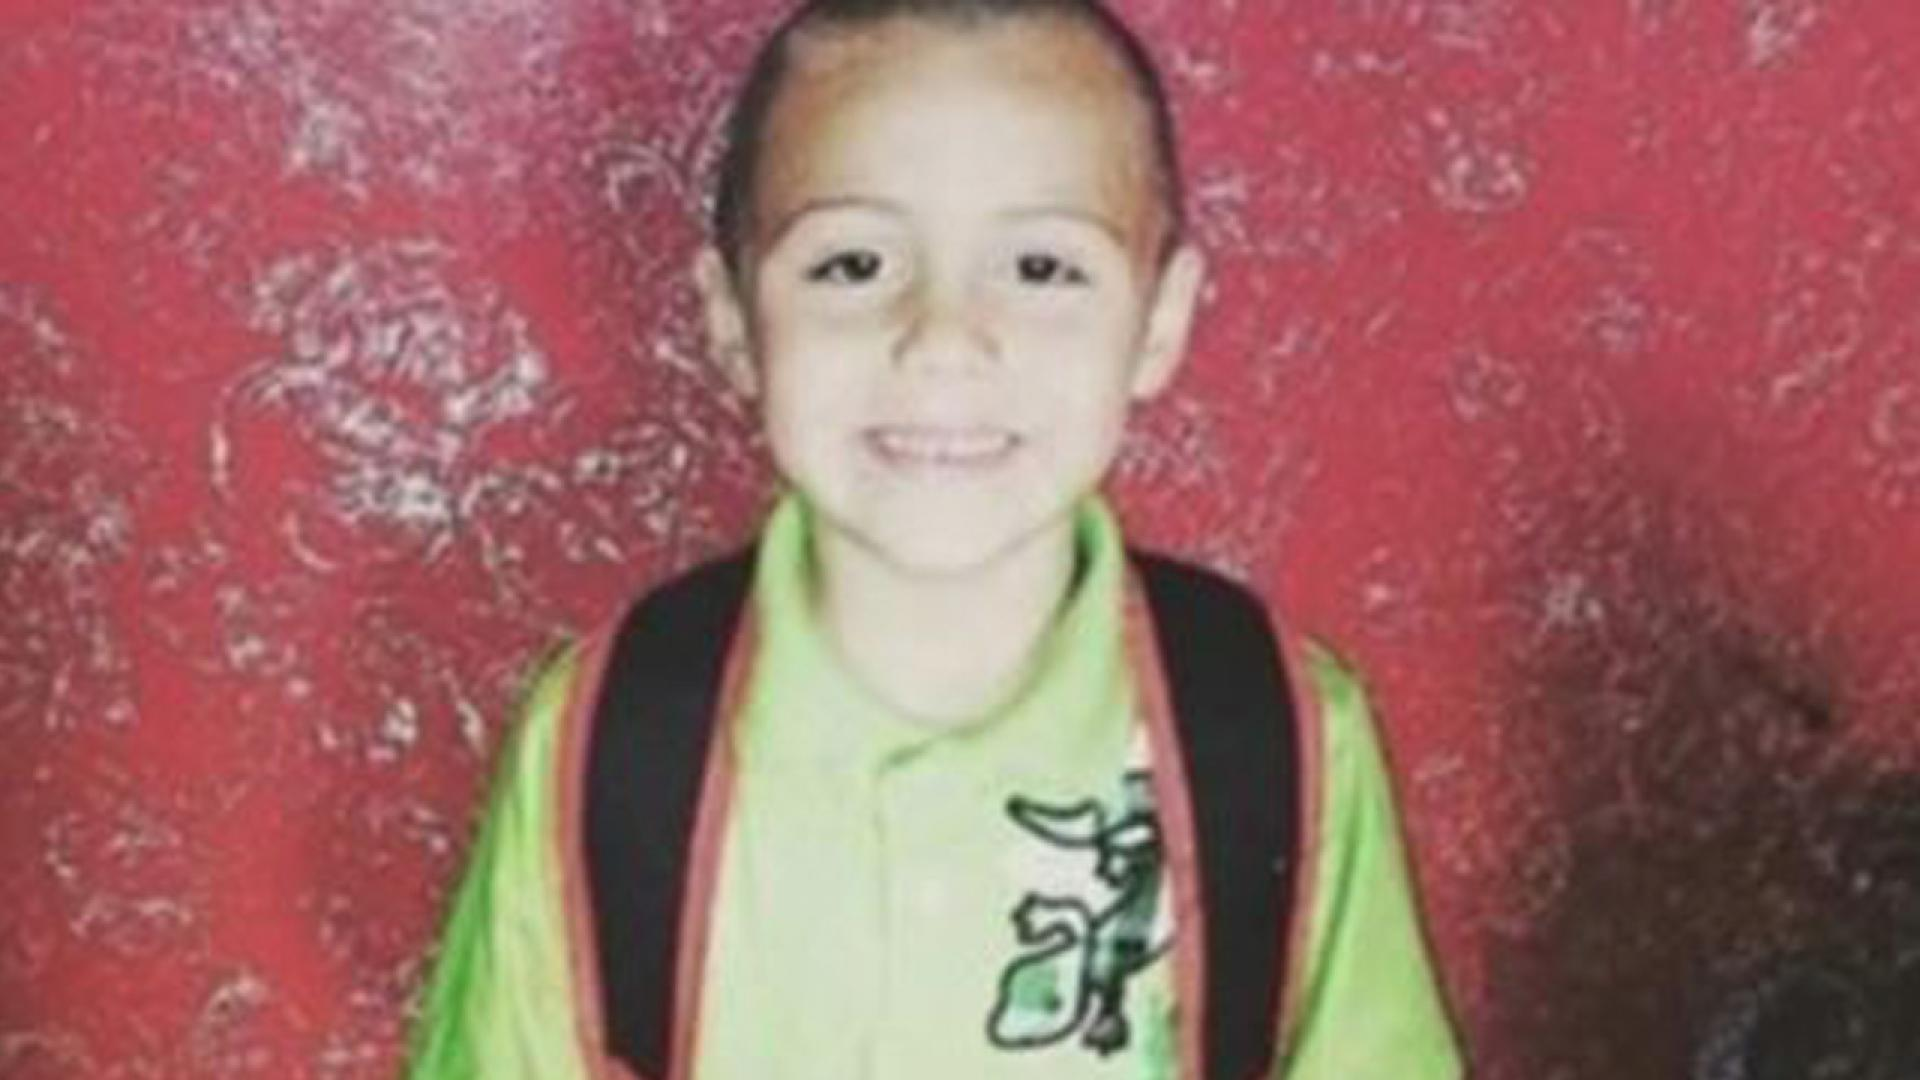 Anthony Avalos, 10, died after reportedly falling and sustaining injuries.